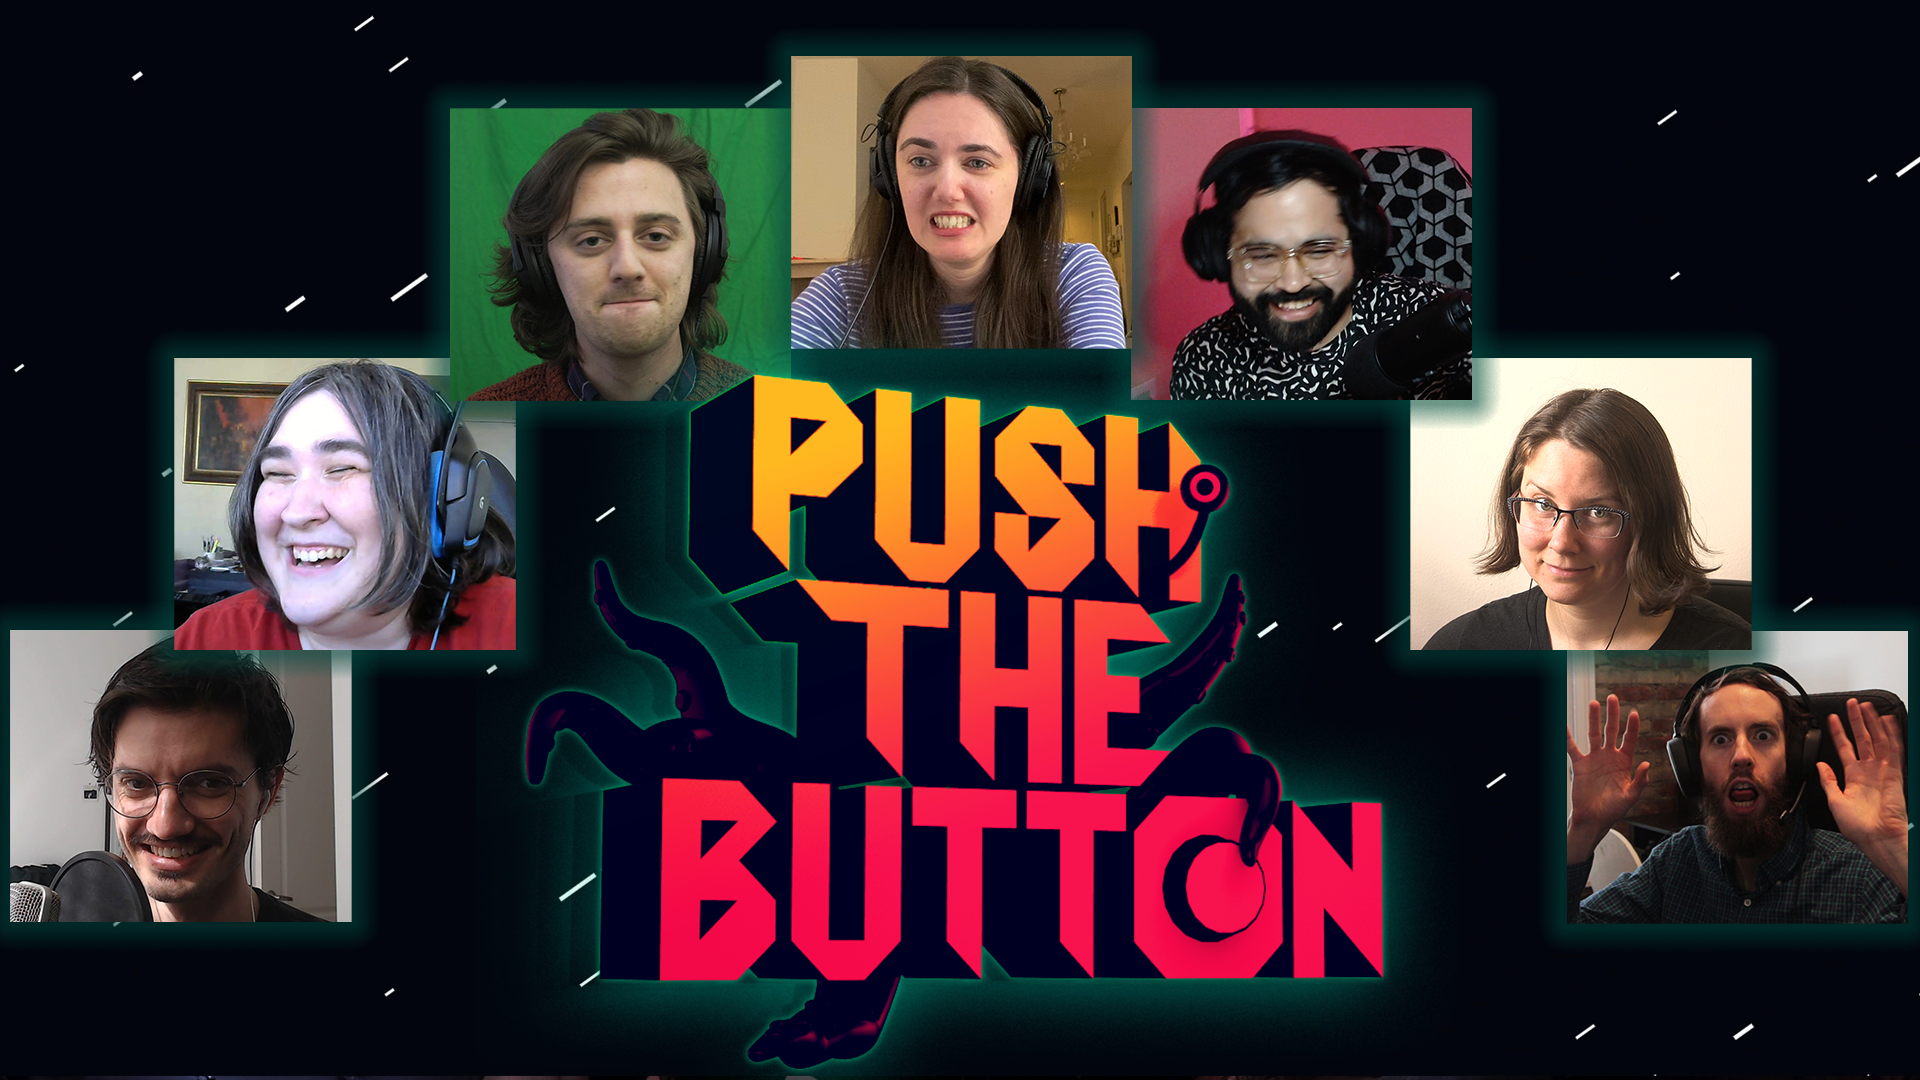 Images of Polygon employees arranged around a Push the Button logo.